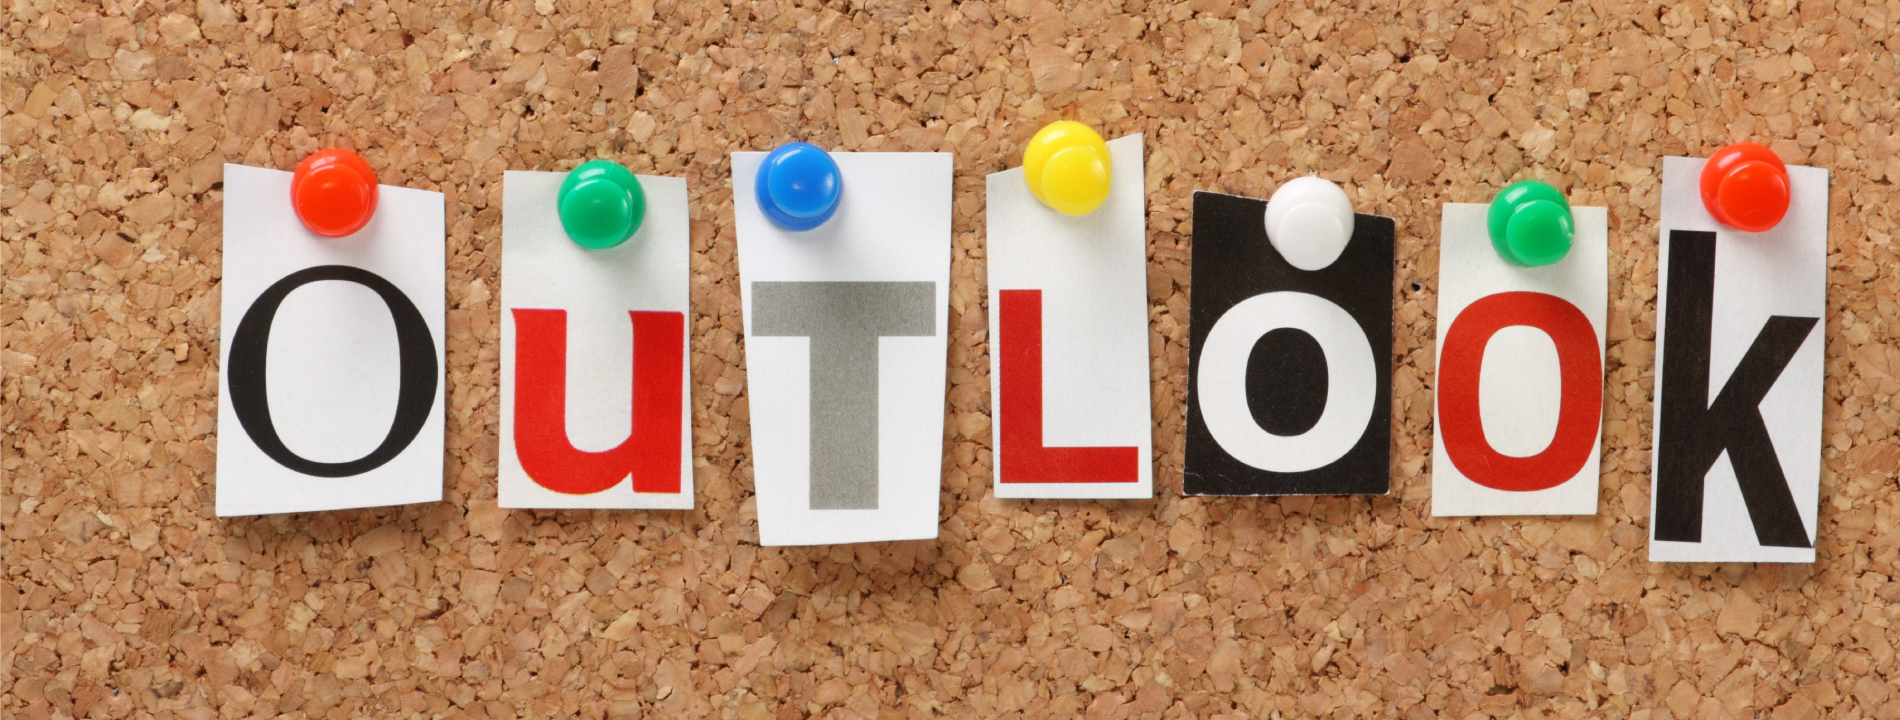 New Report- Small Business Outlooks: Q4 2020 and Beyond